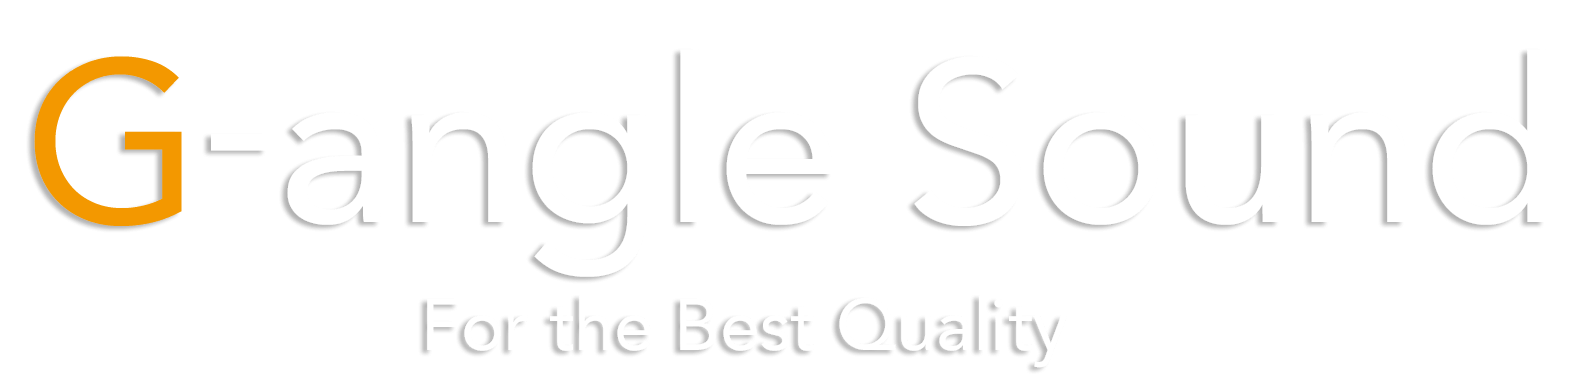 G-angle Sound「For the Best Quality」